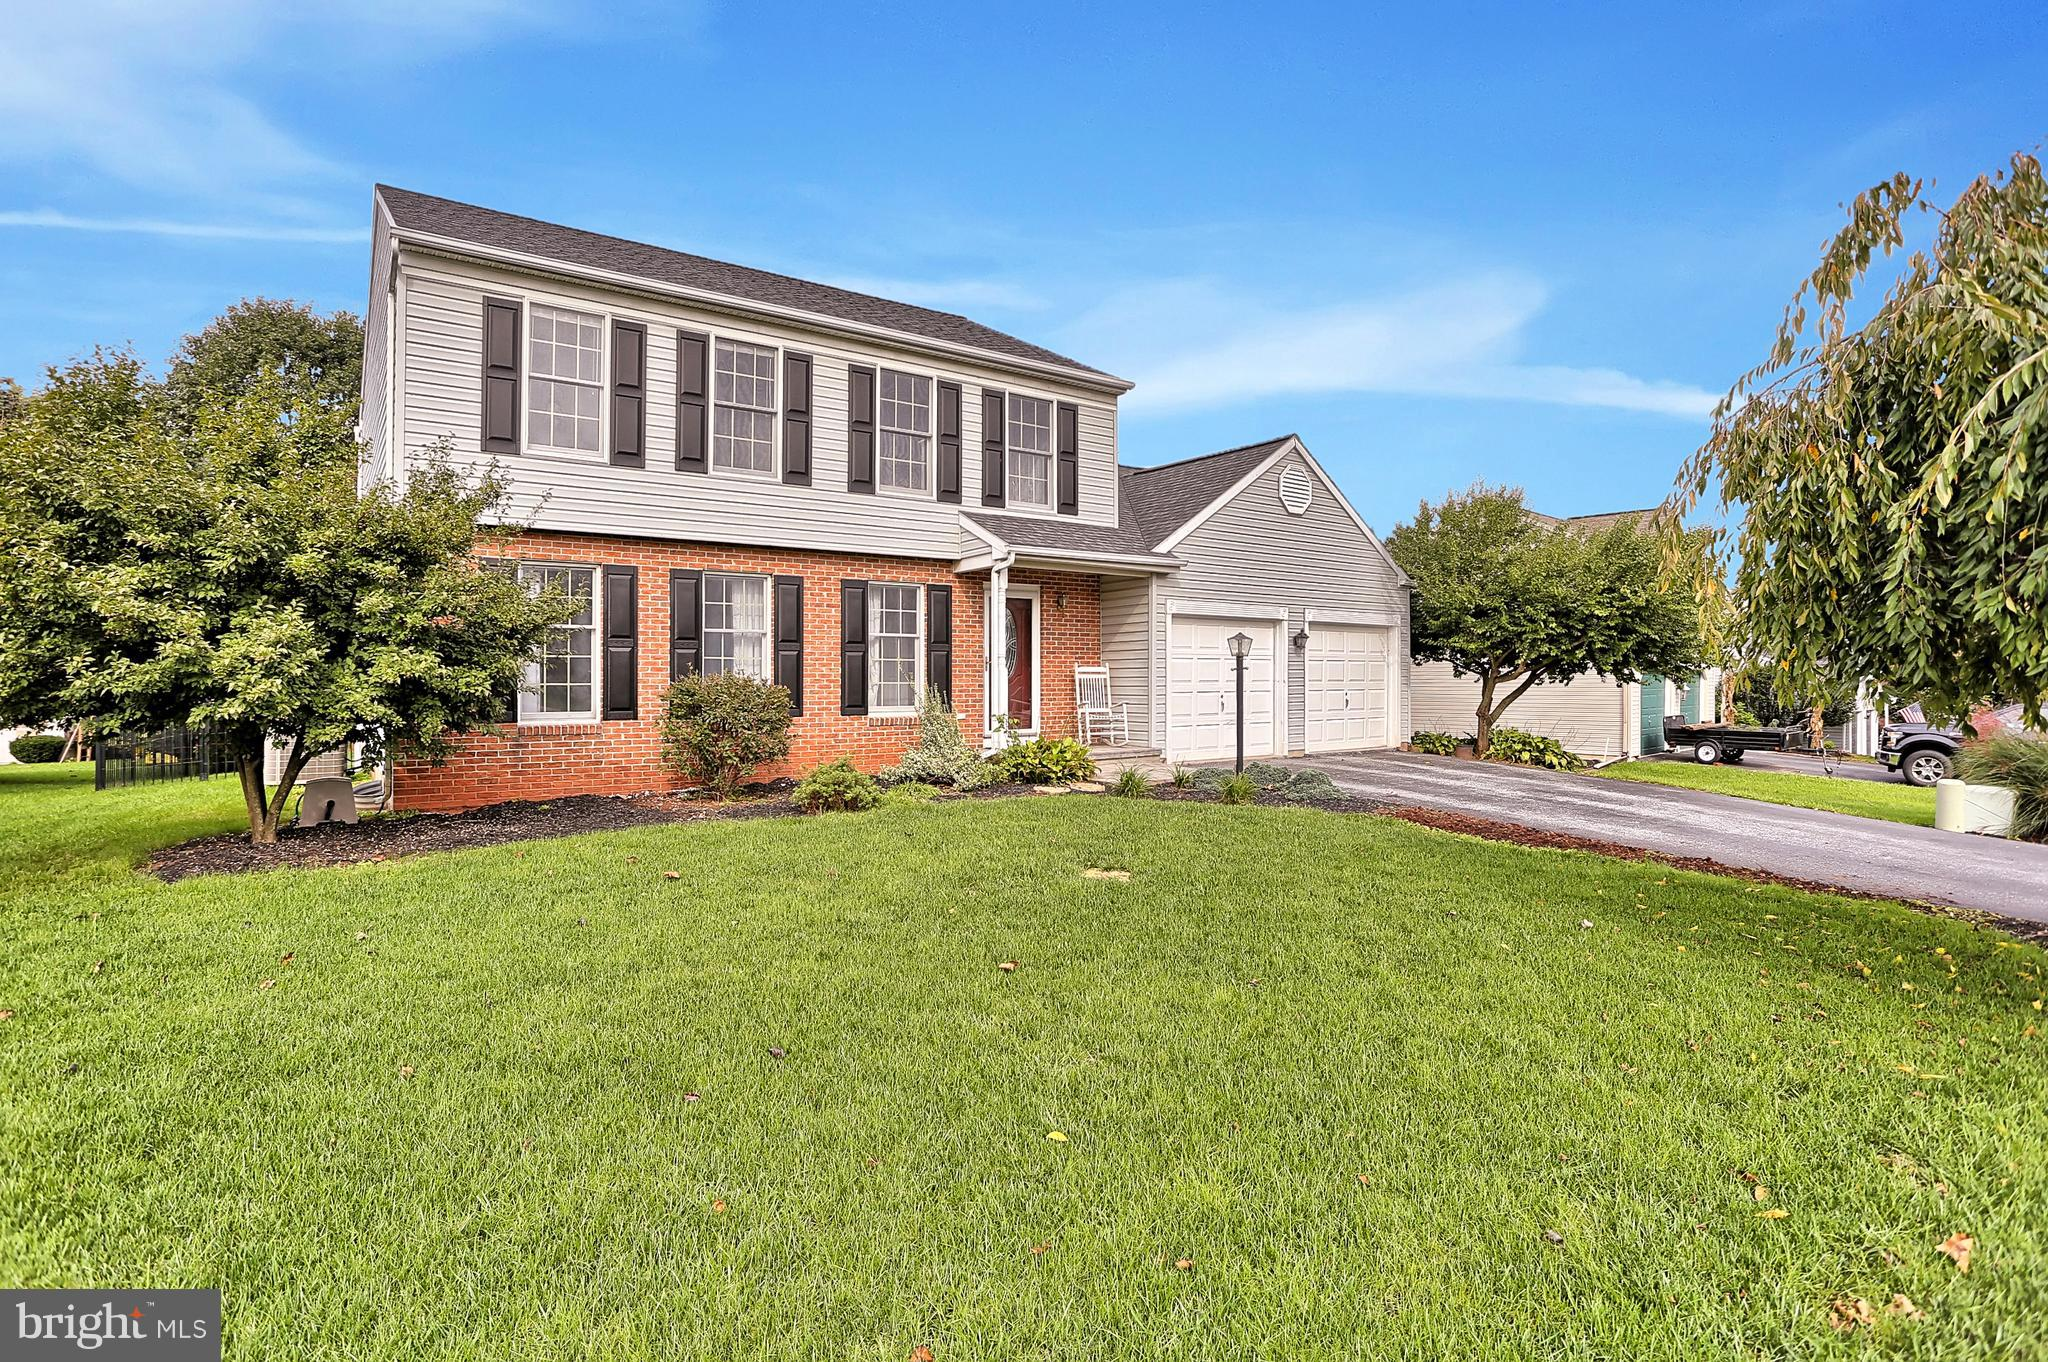 45 RIDGEVIEW DRIVE, ETTERS, PA 17319